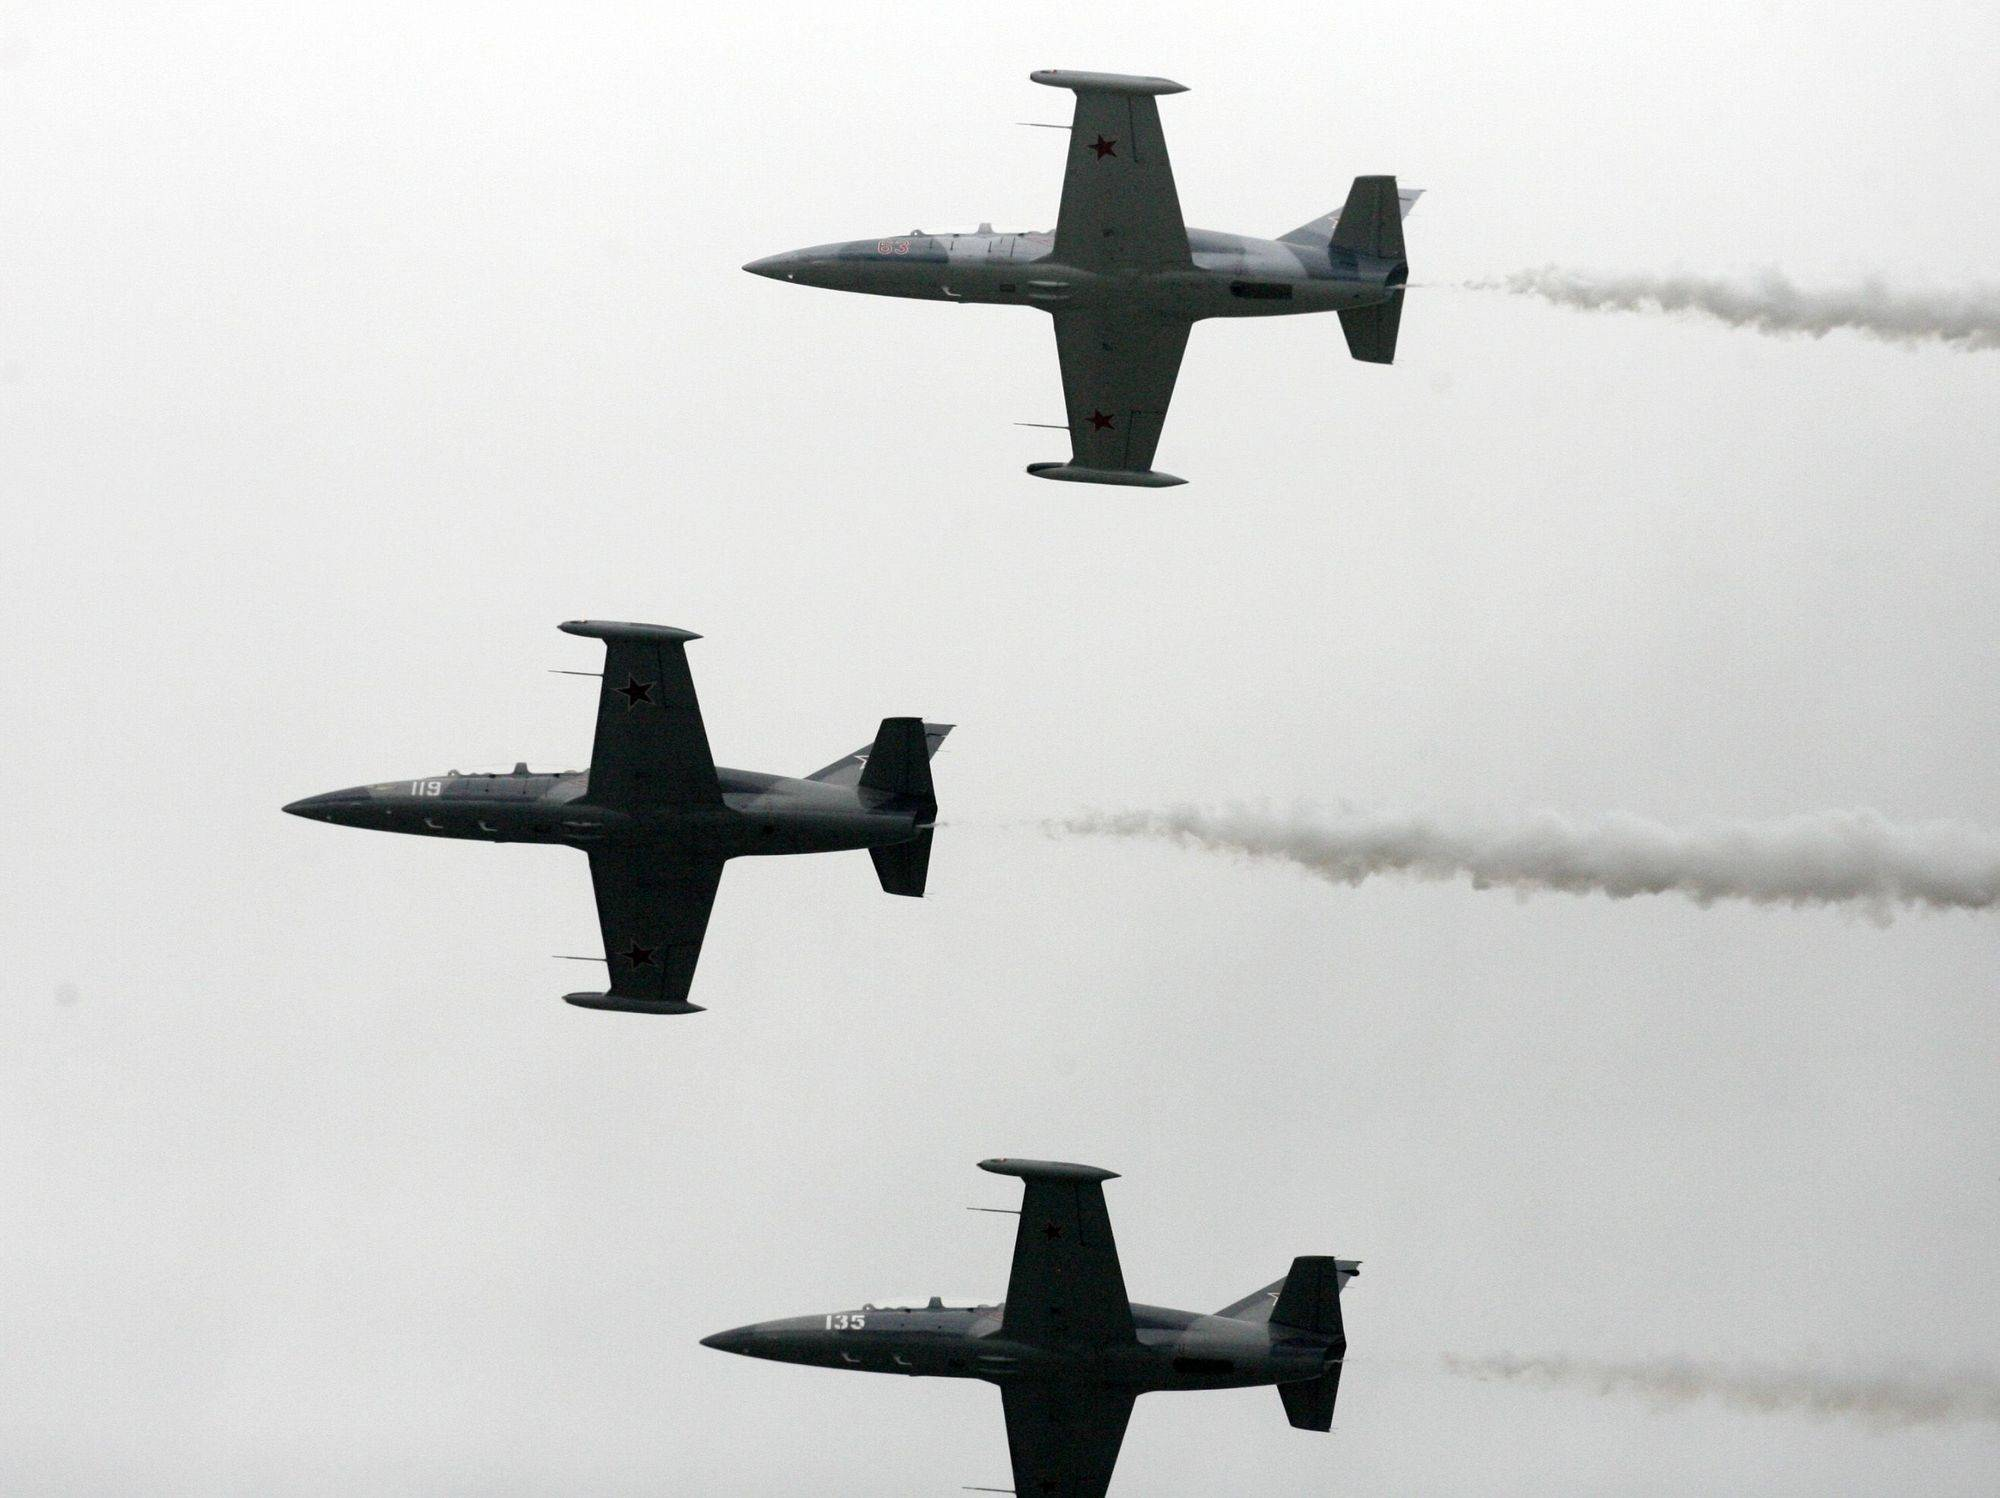 Images of the 2010 Waukegan Air Show